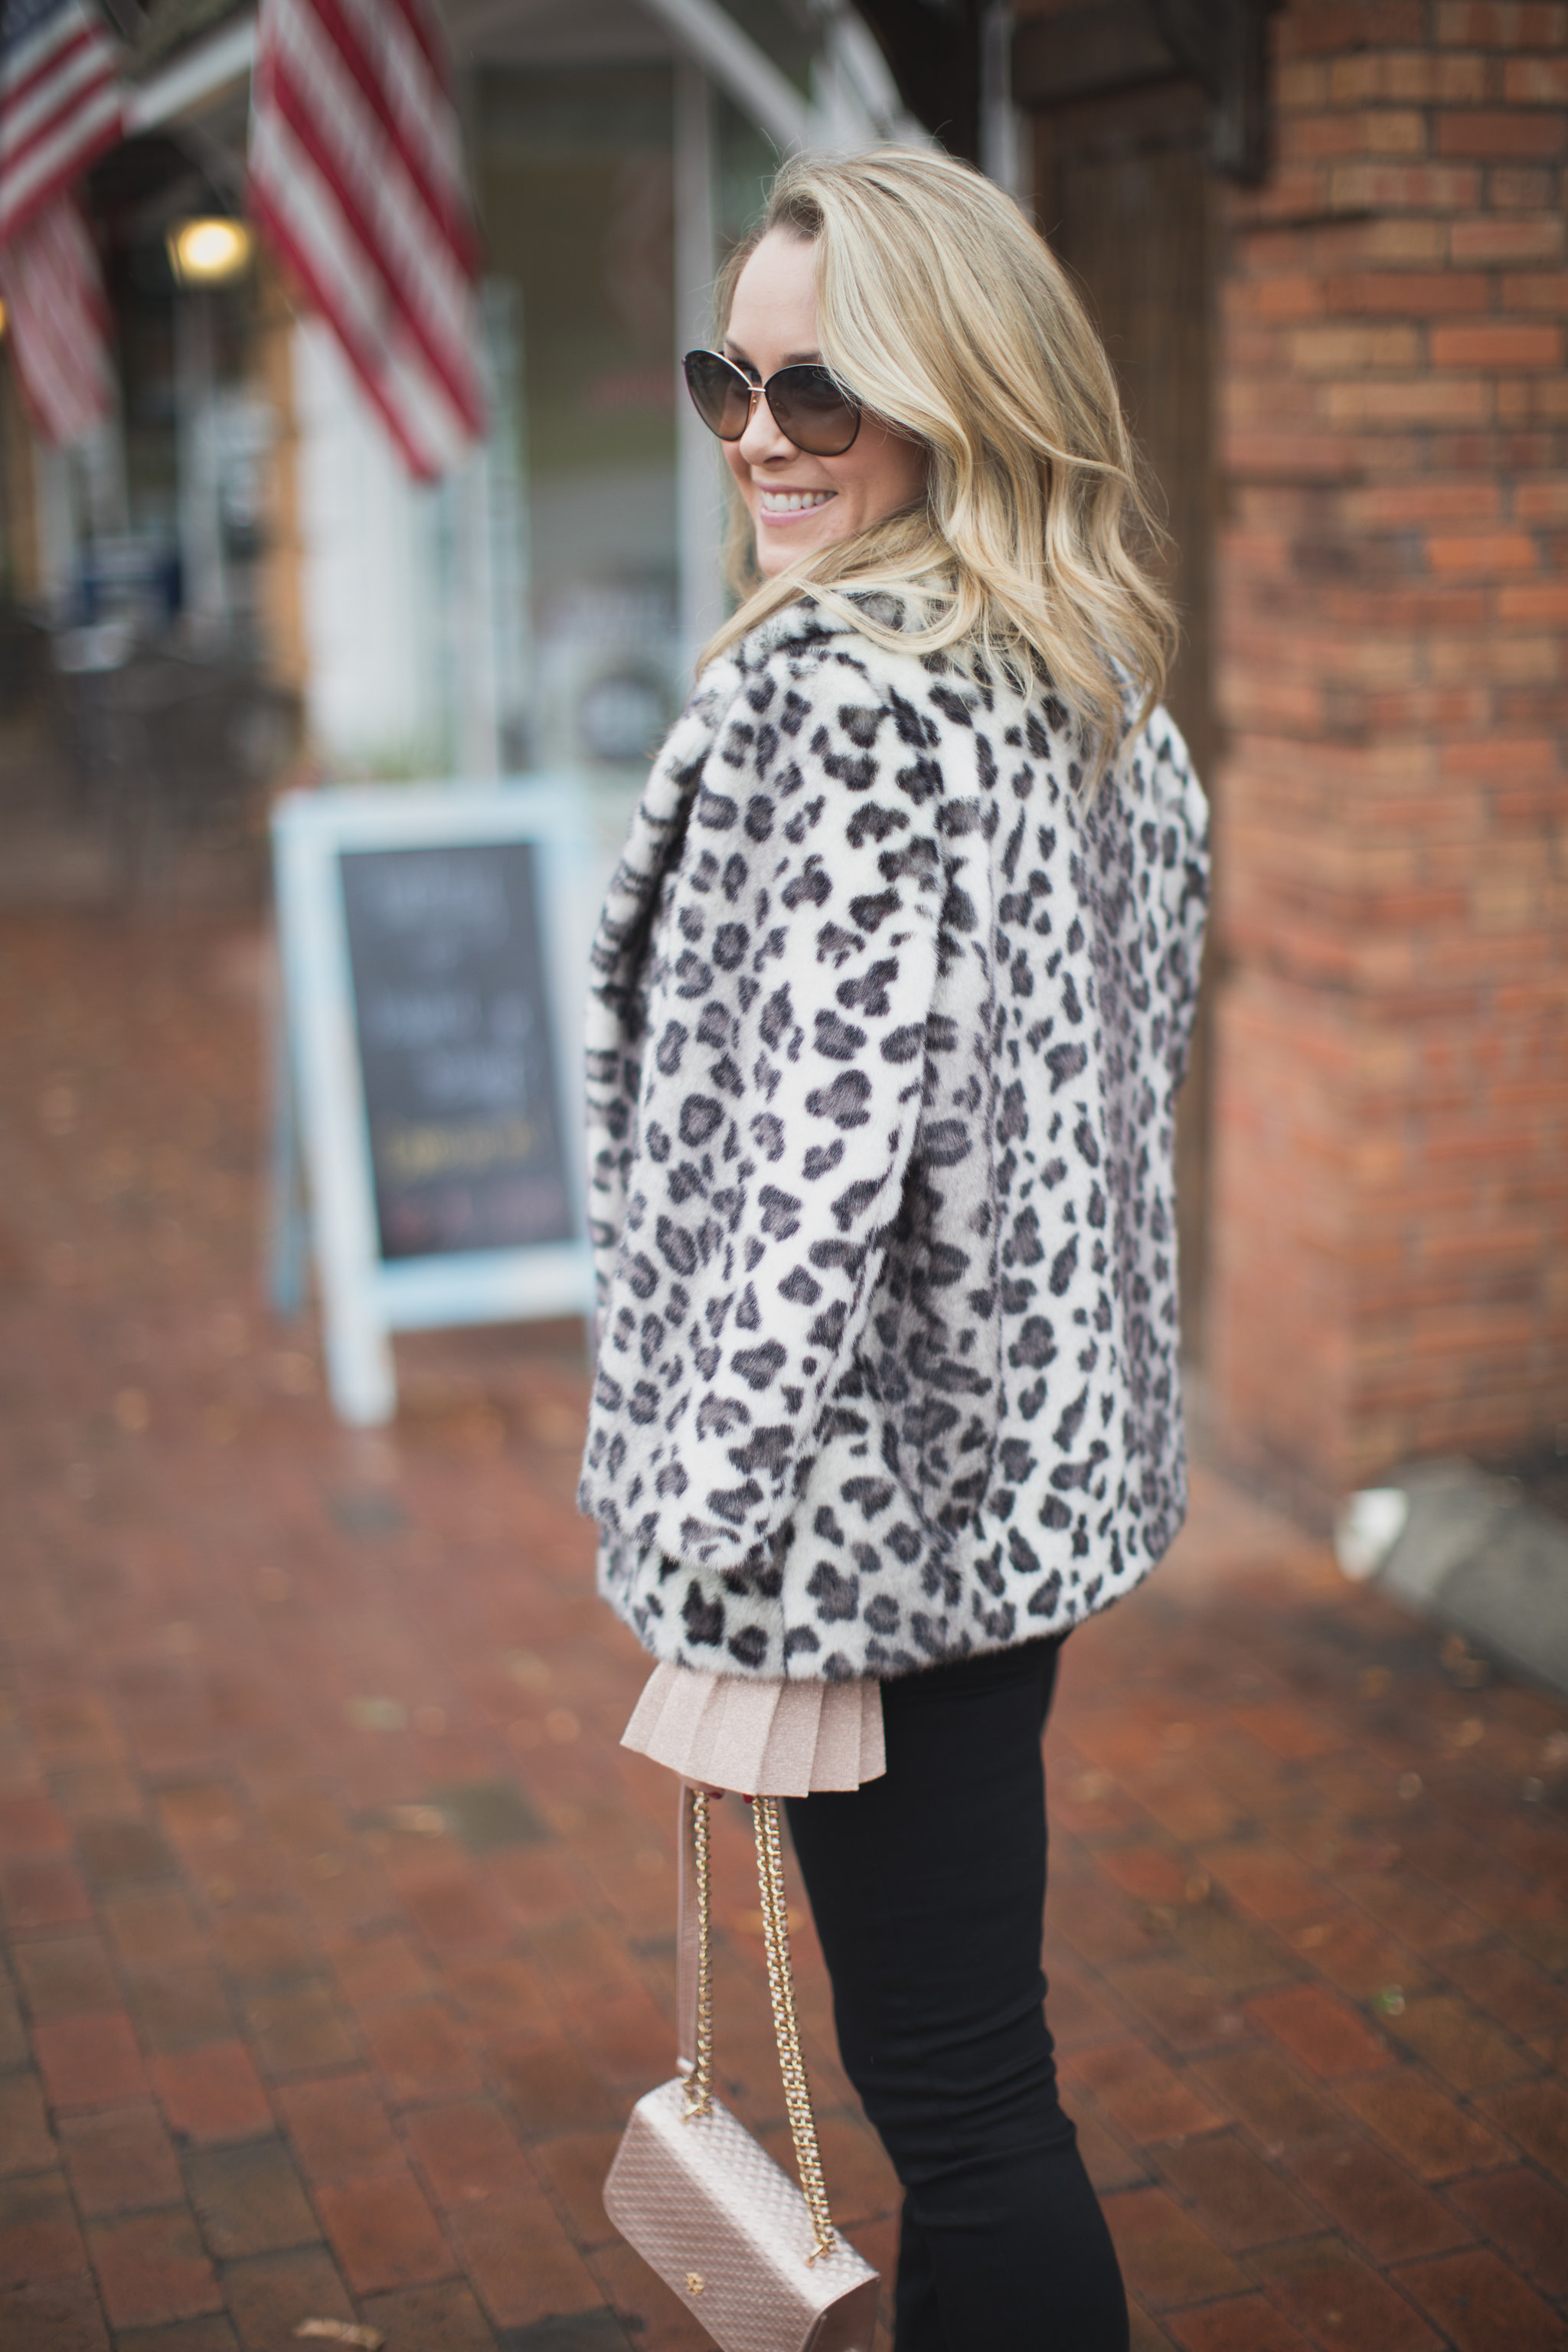 My go-to look for the holidays on ECW today. - Shopping with IFCHIC by North Carolina fashion blogger Every Chic Way